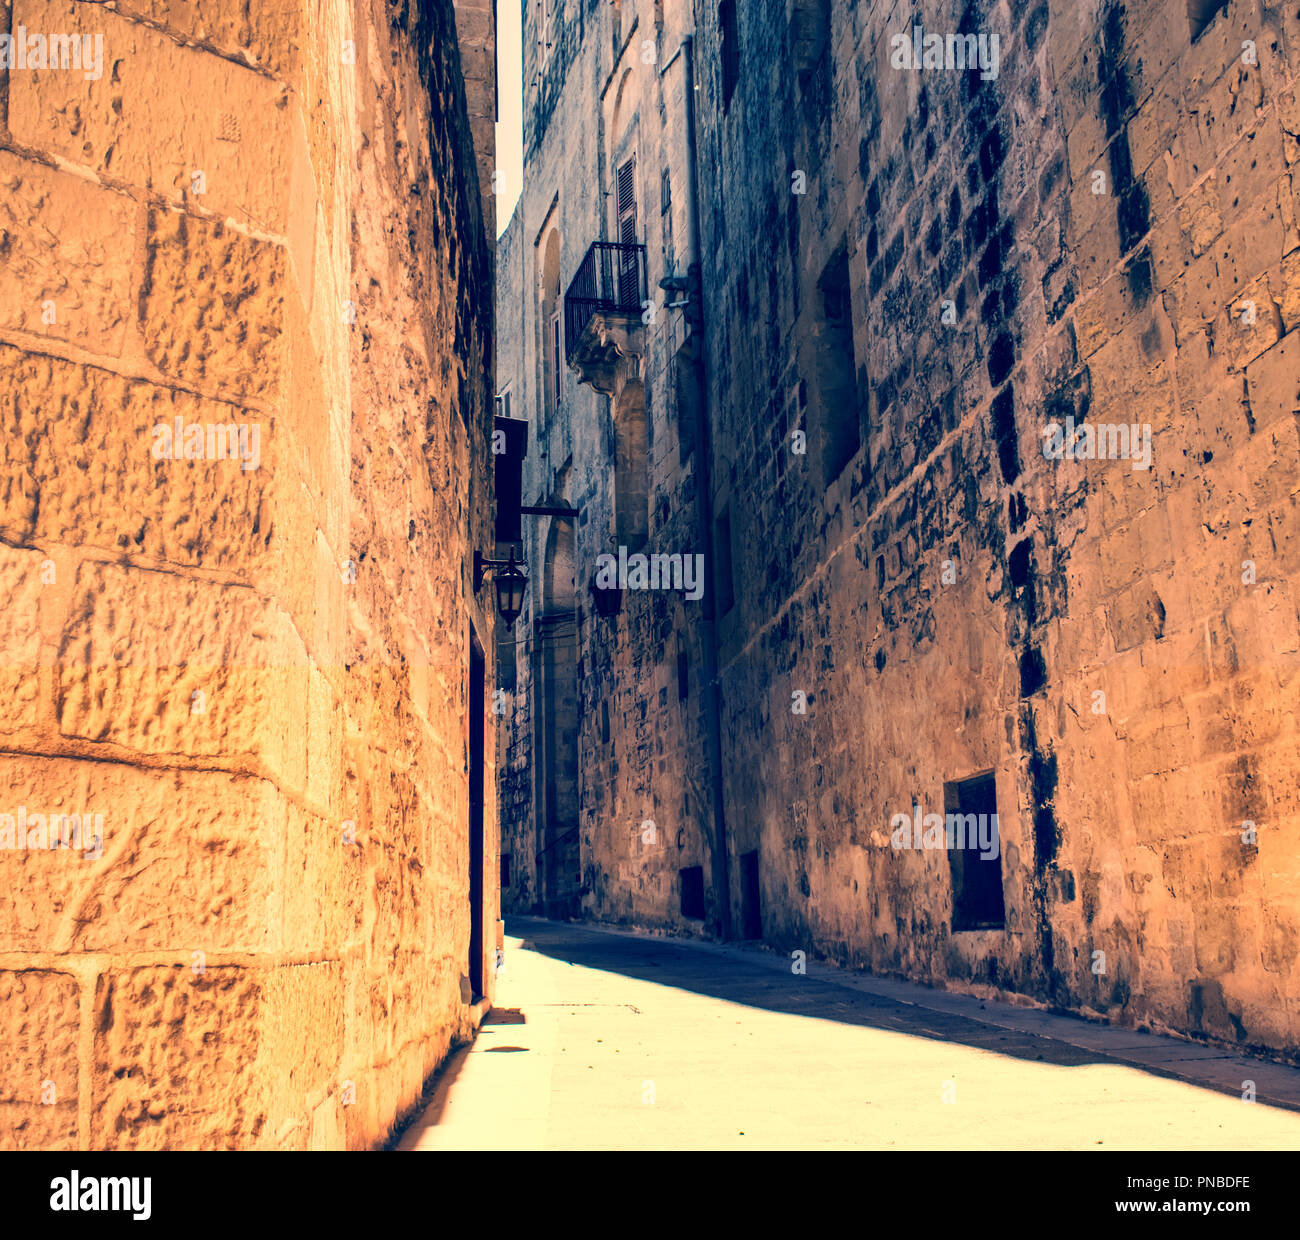 A typical and historical narrow road in Mdina, Malta. - Stock Image